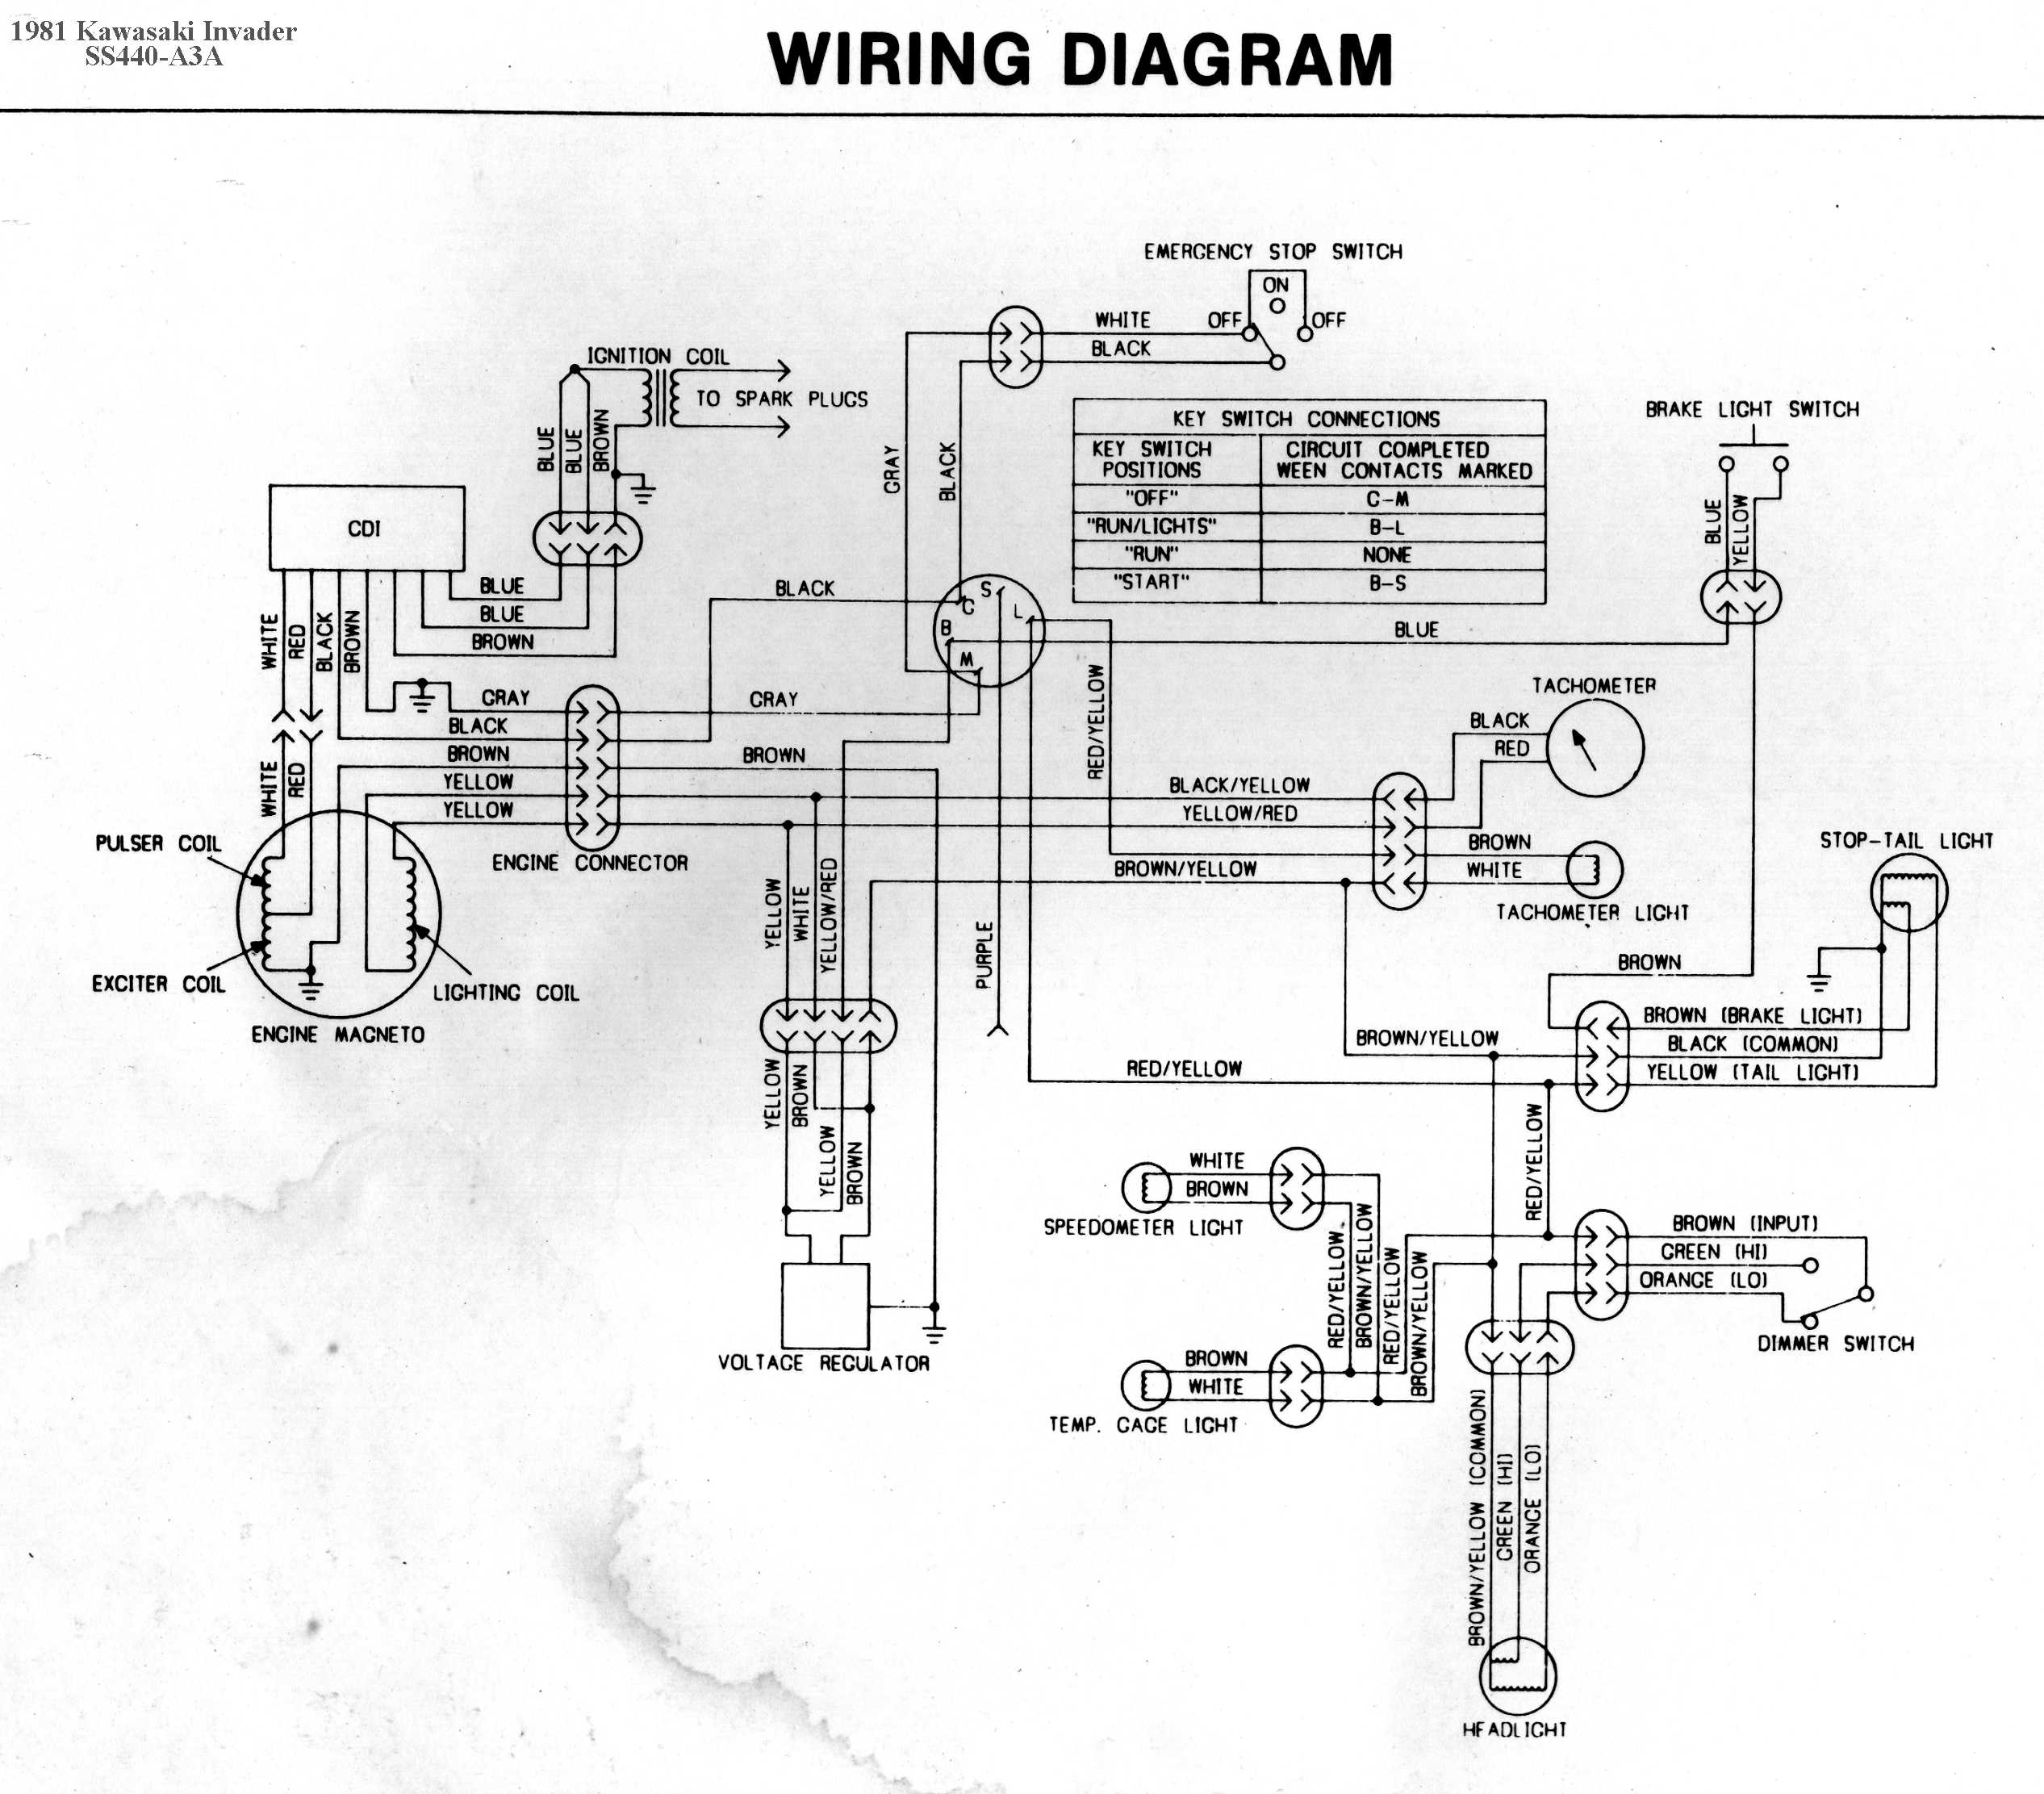 switch wiring diagram snowmobile wiring diagram z4 rh 19 mhtre biologiethemenabitur de